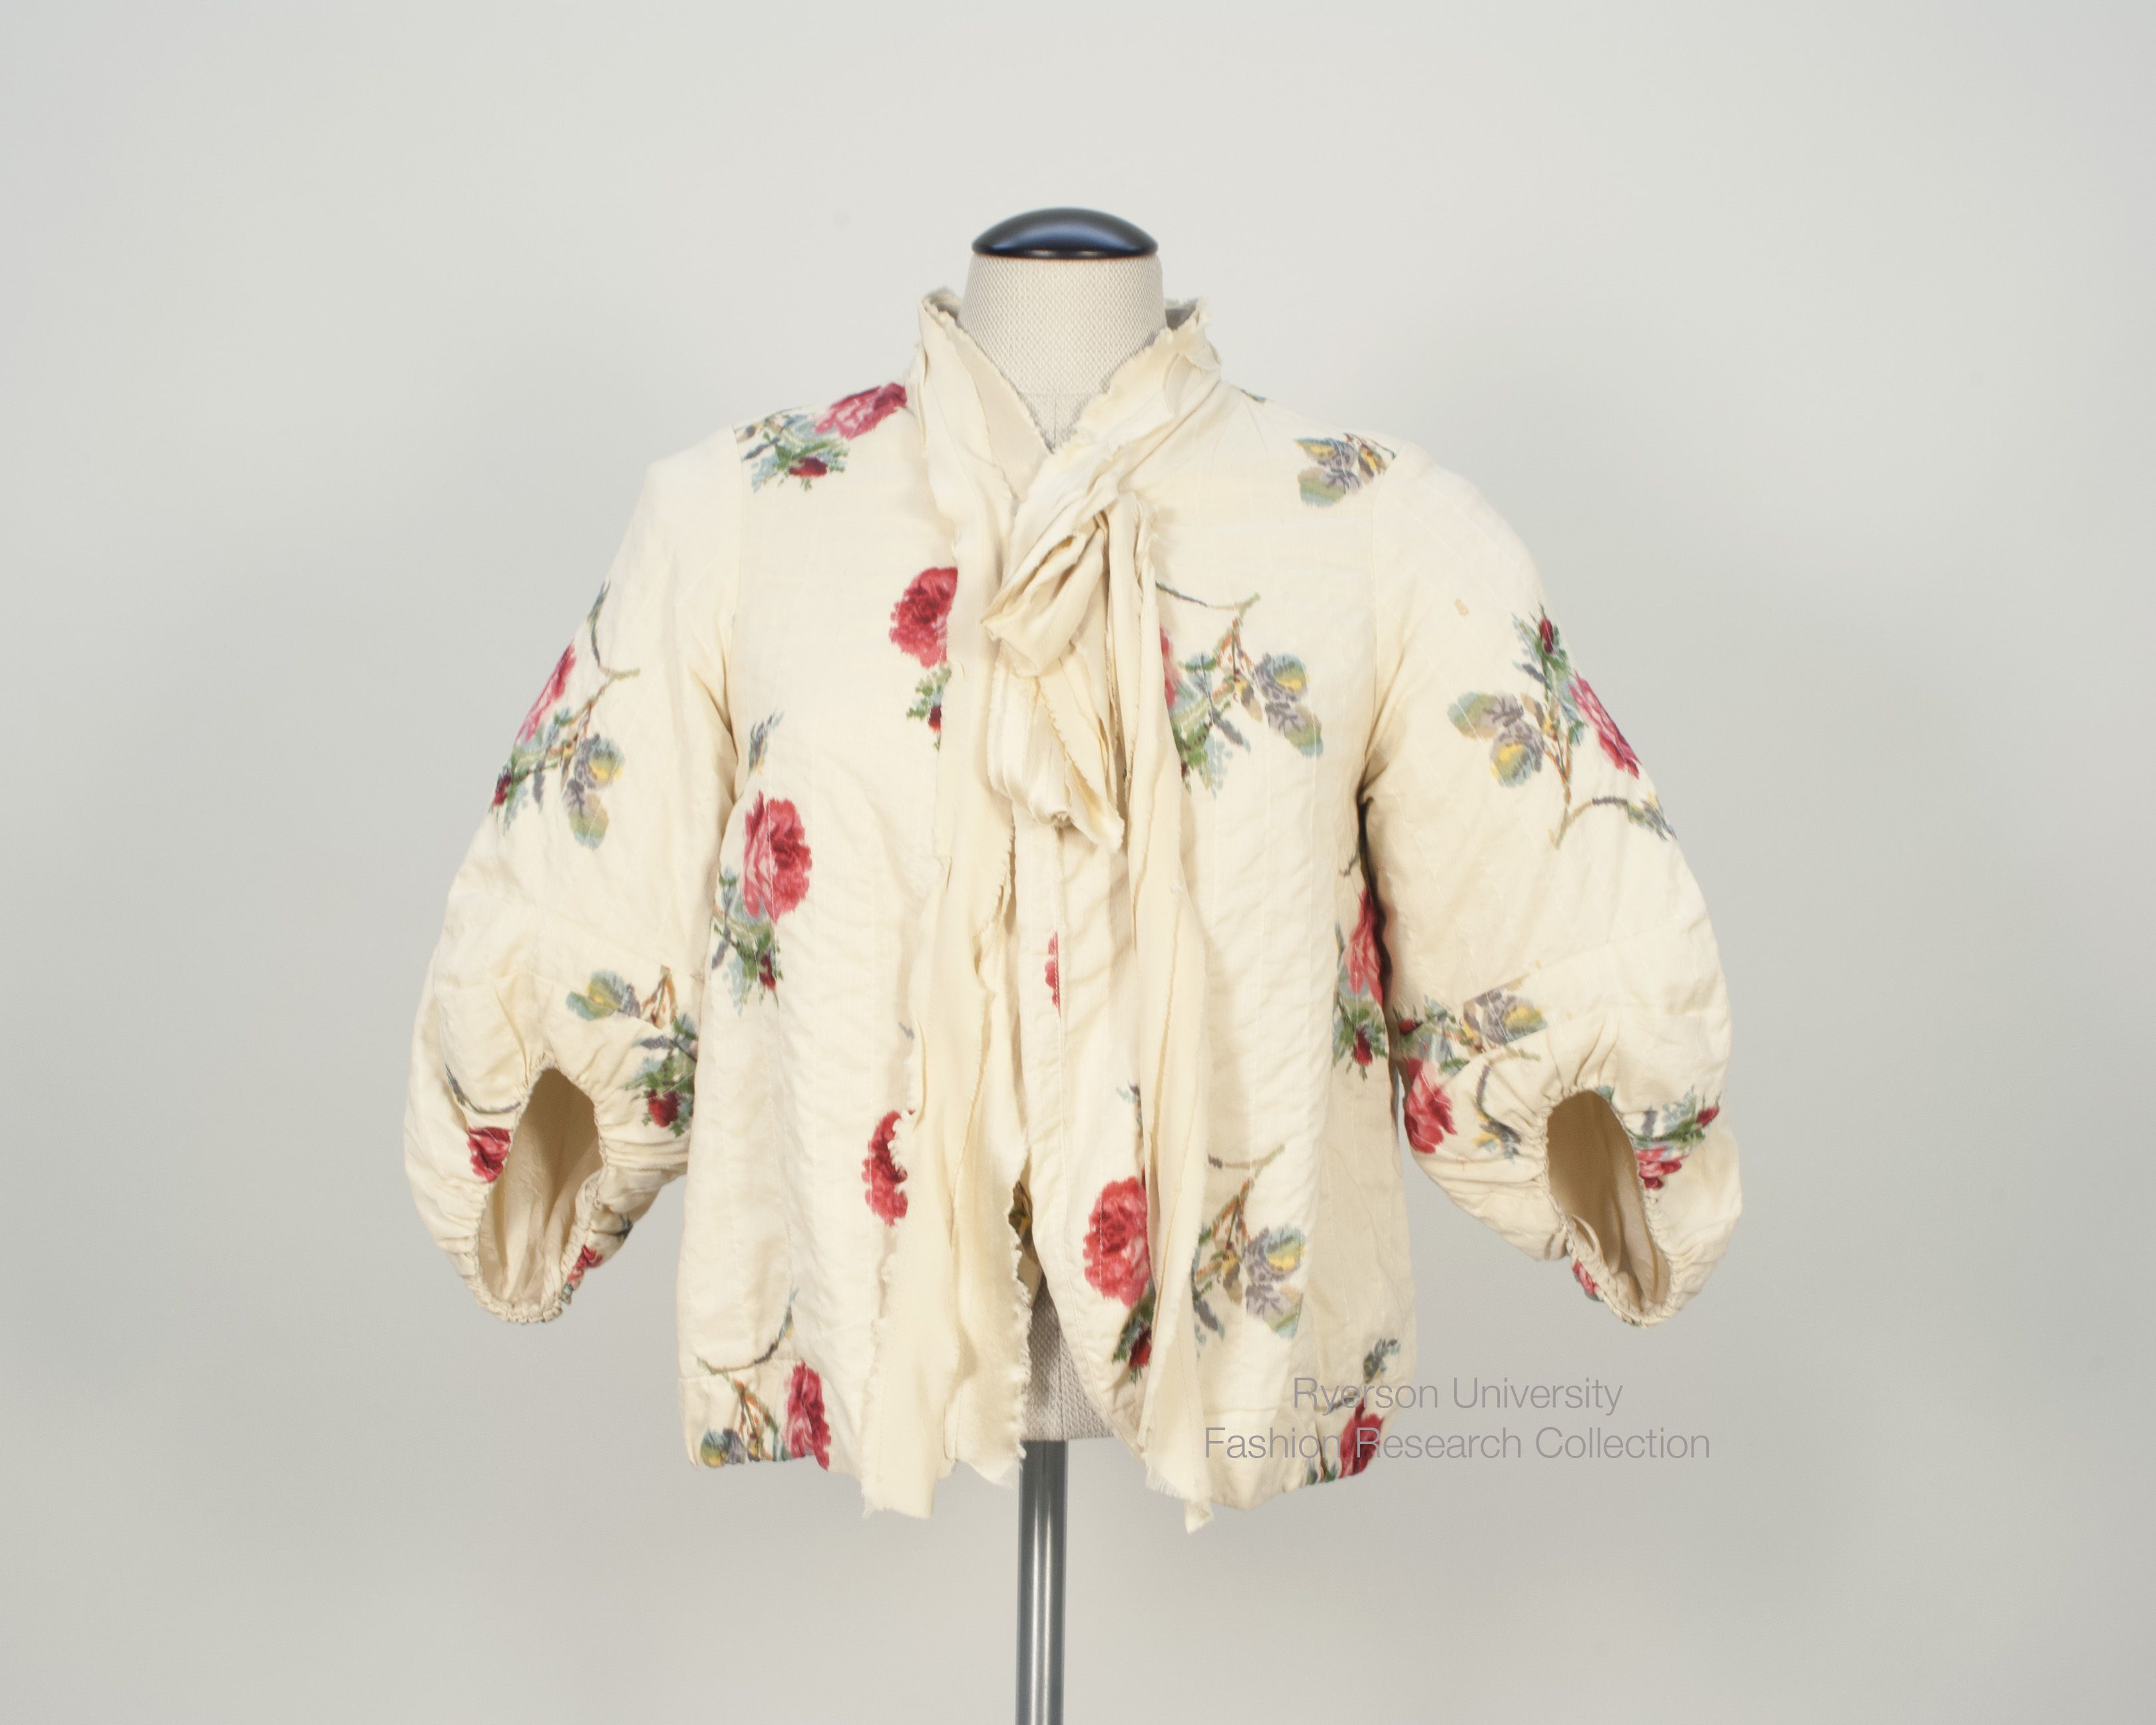 Tea-stained beige cotton with printed red rose 'bed-jacket' with 3/4 balloon sleeves. Textile is top stiched in wide vertical rows. Frayed beige silk ties at neck with set bow  on R side. Lined in beige silk with drawstring at middle back of lining. Size 6. By Mercy of Toronto, Ontario. C. 2008. FRC 2015.06.001